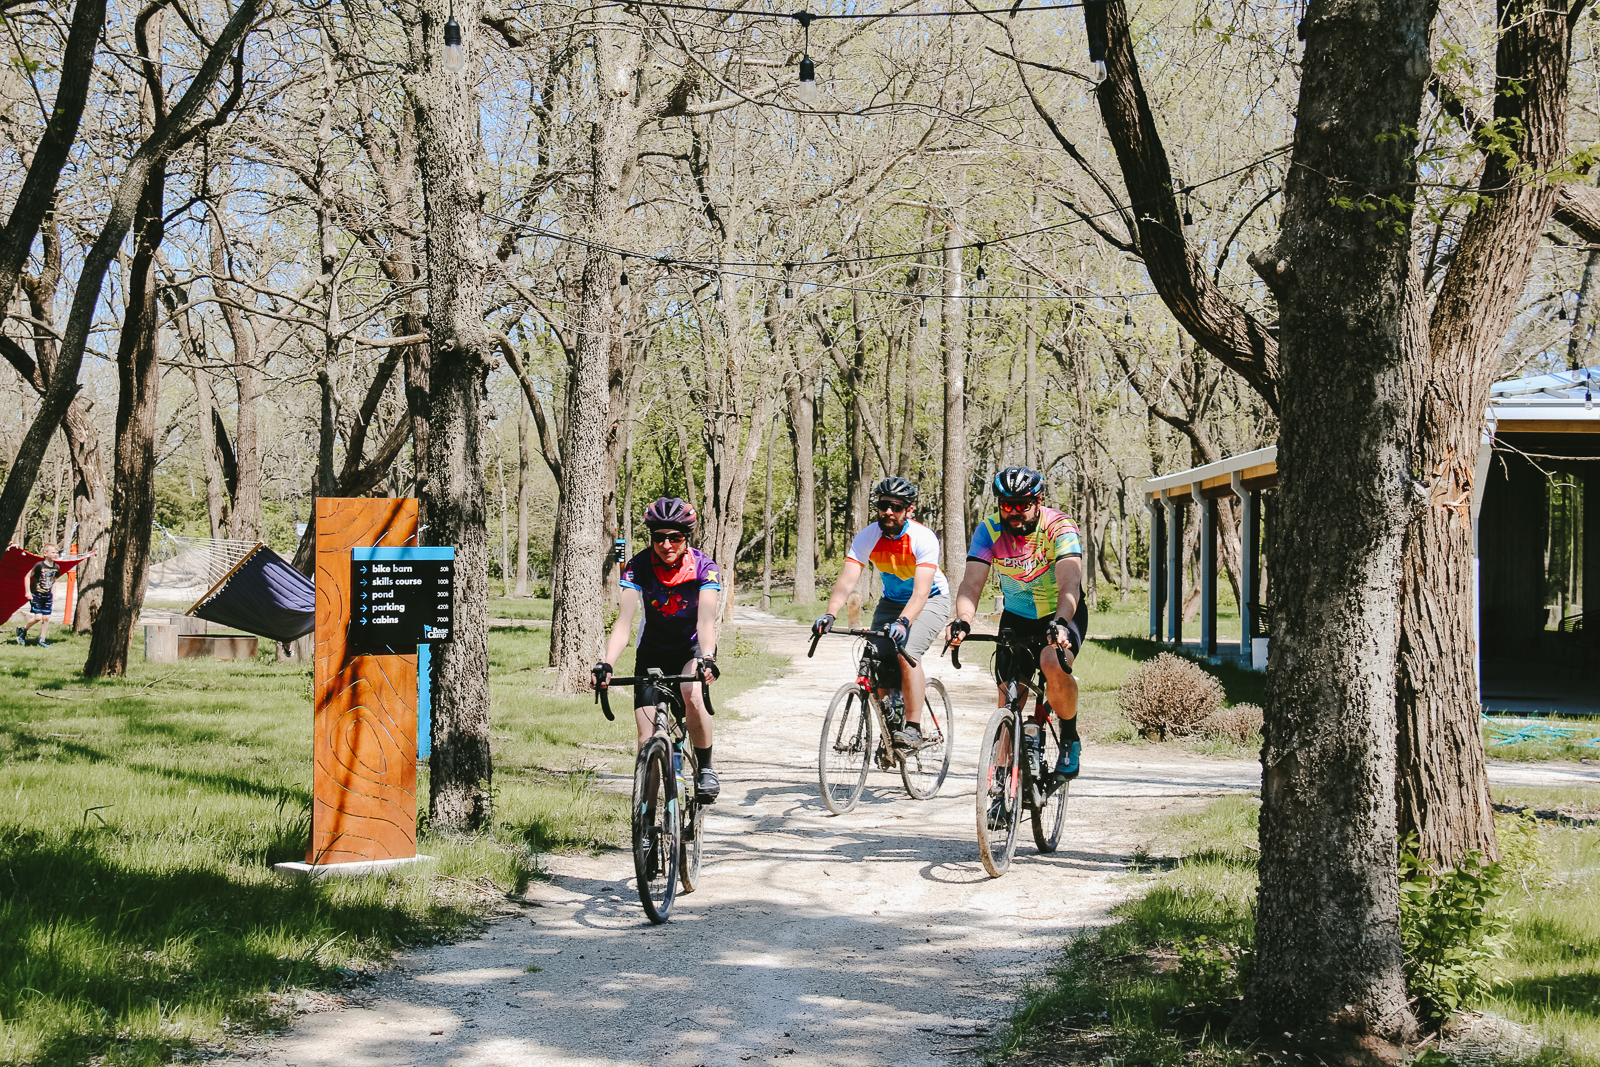 The Southwind Rail Trail is a scenic 6.5-mile trail featuring a magnificent historical bridge, wildlife, and more.